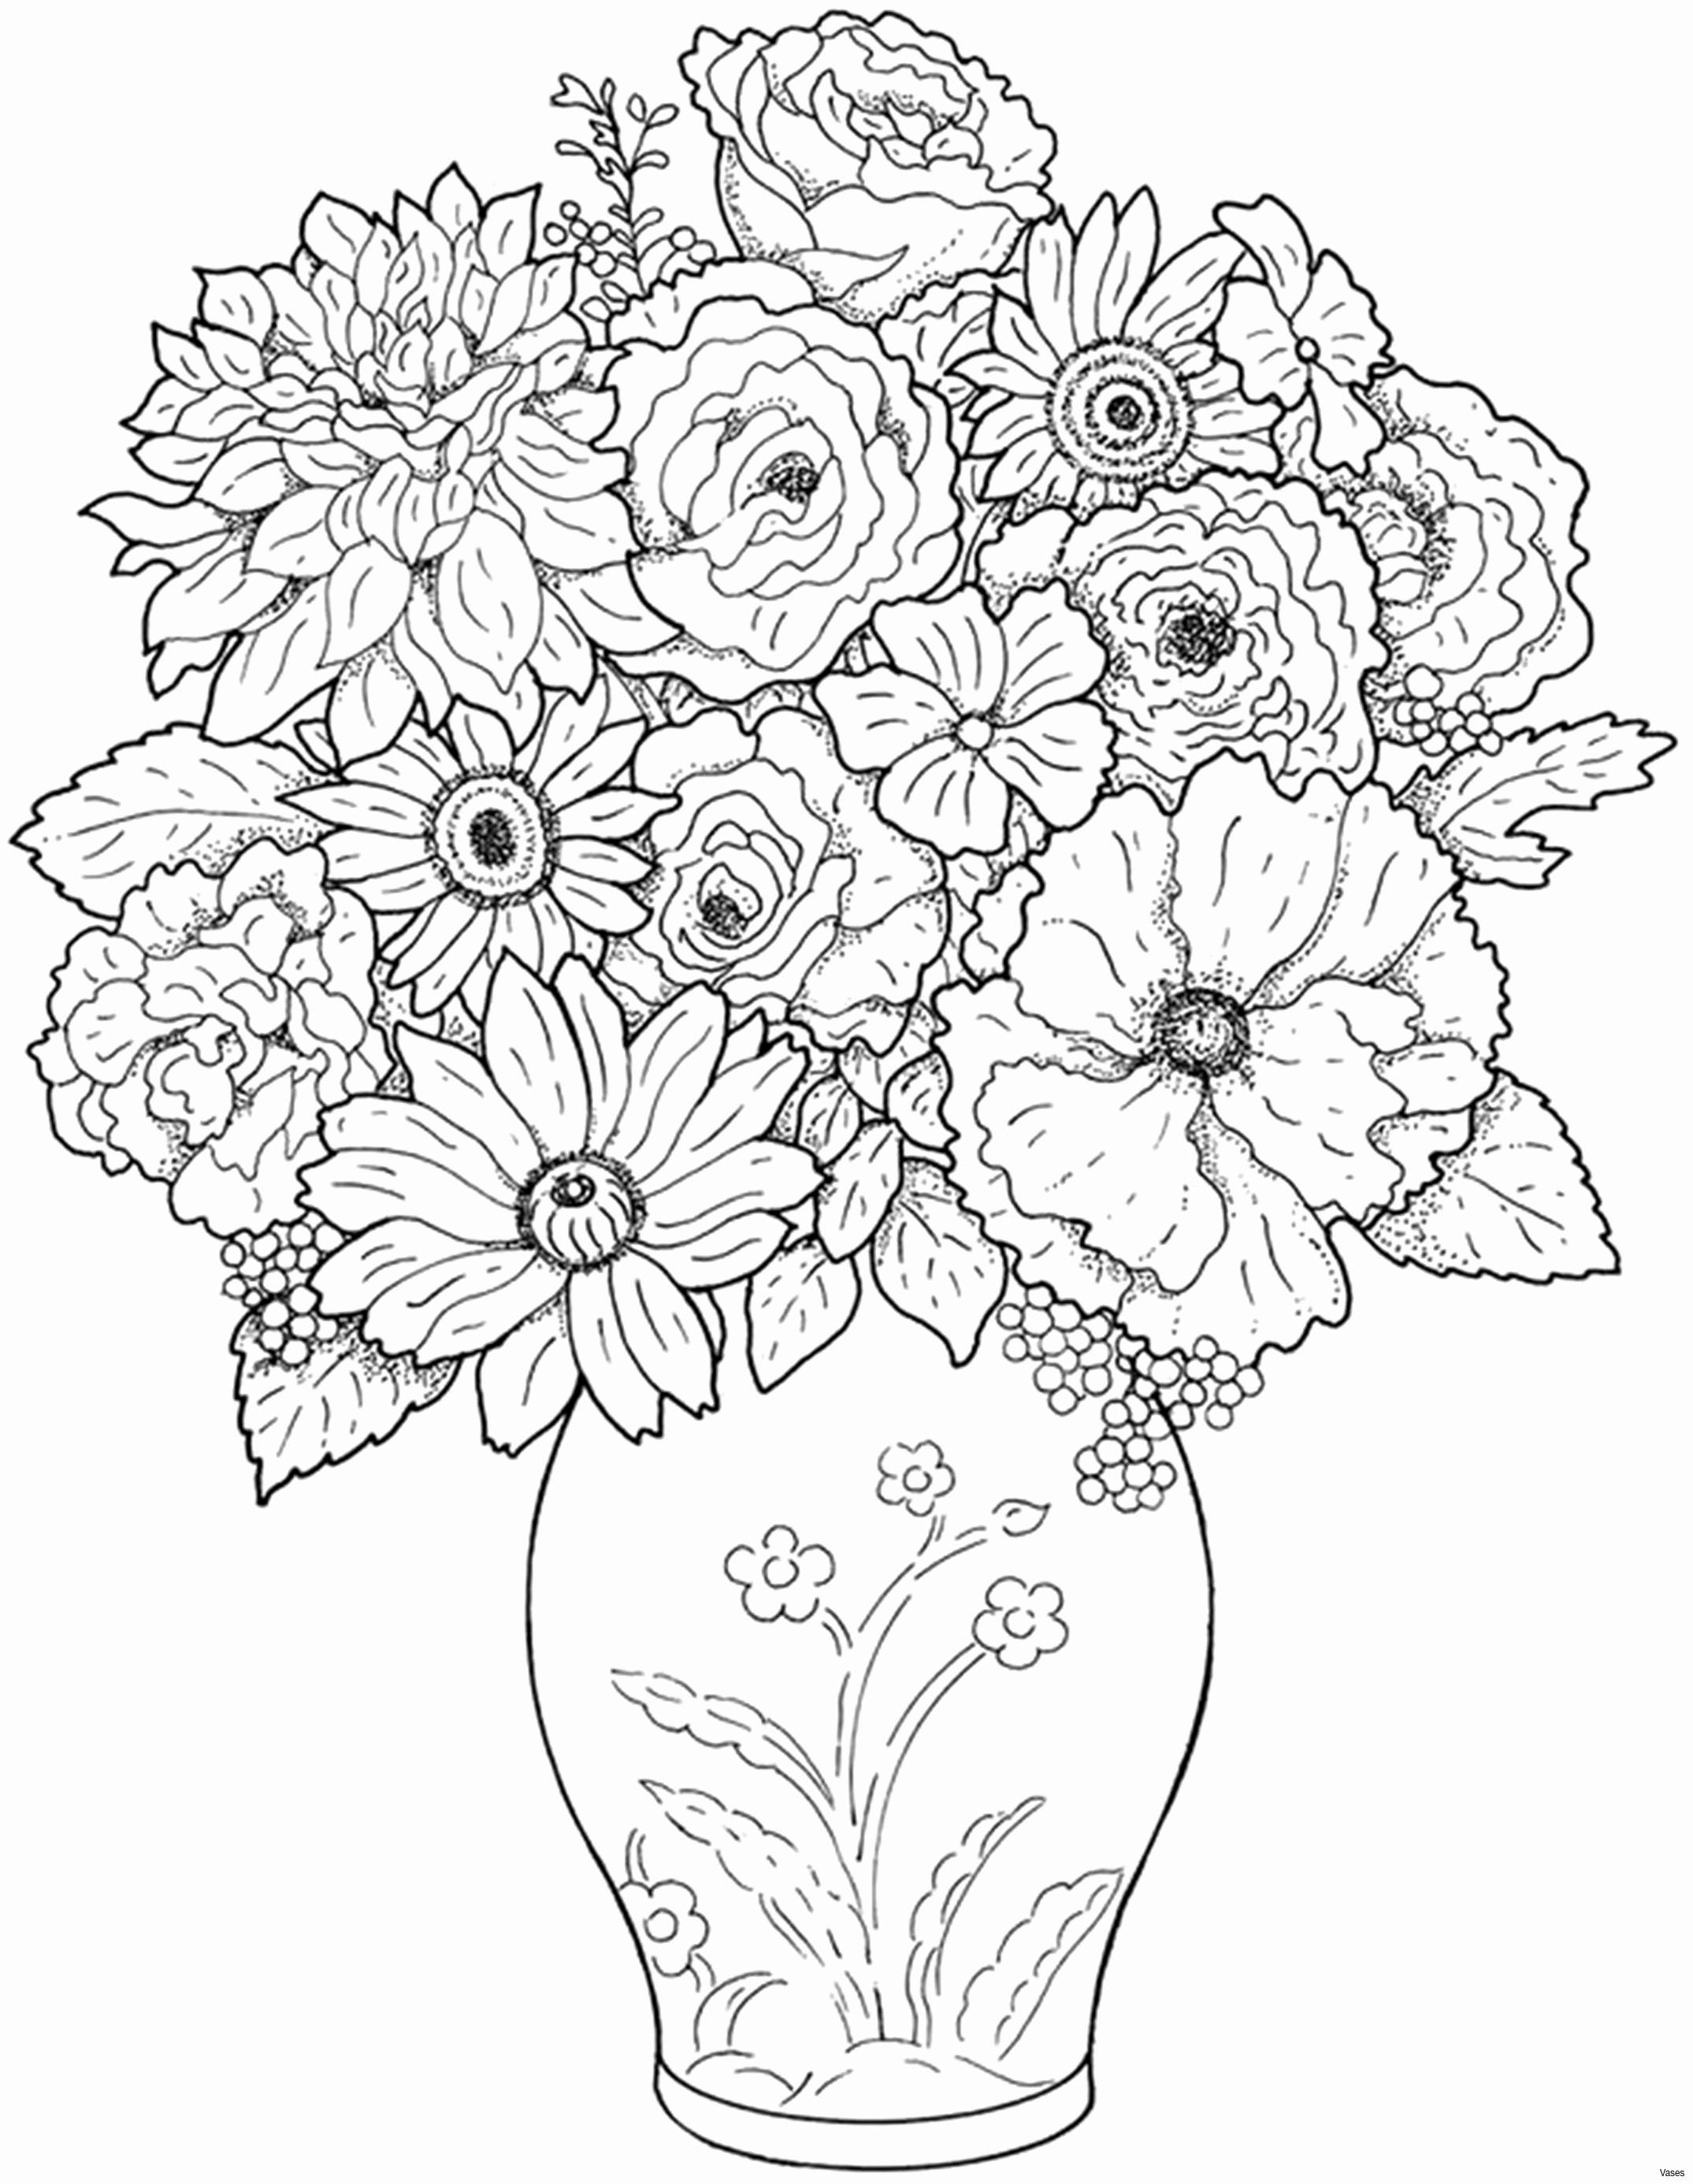 advanced flower coloring pages advanced flower coloring pages at getcoloringscom free flower advanced pages coloring